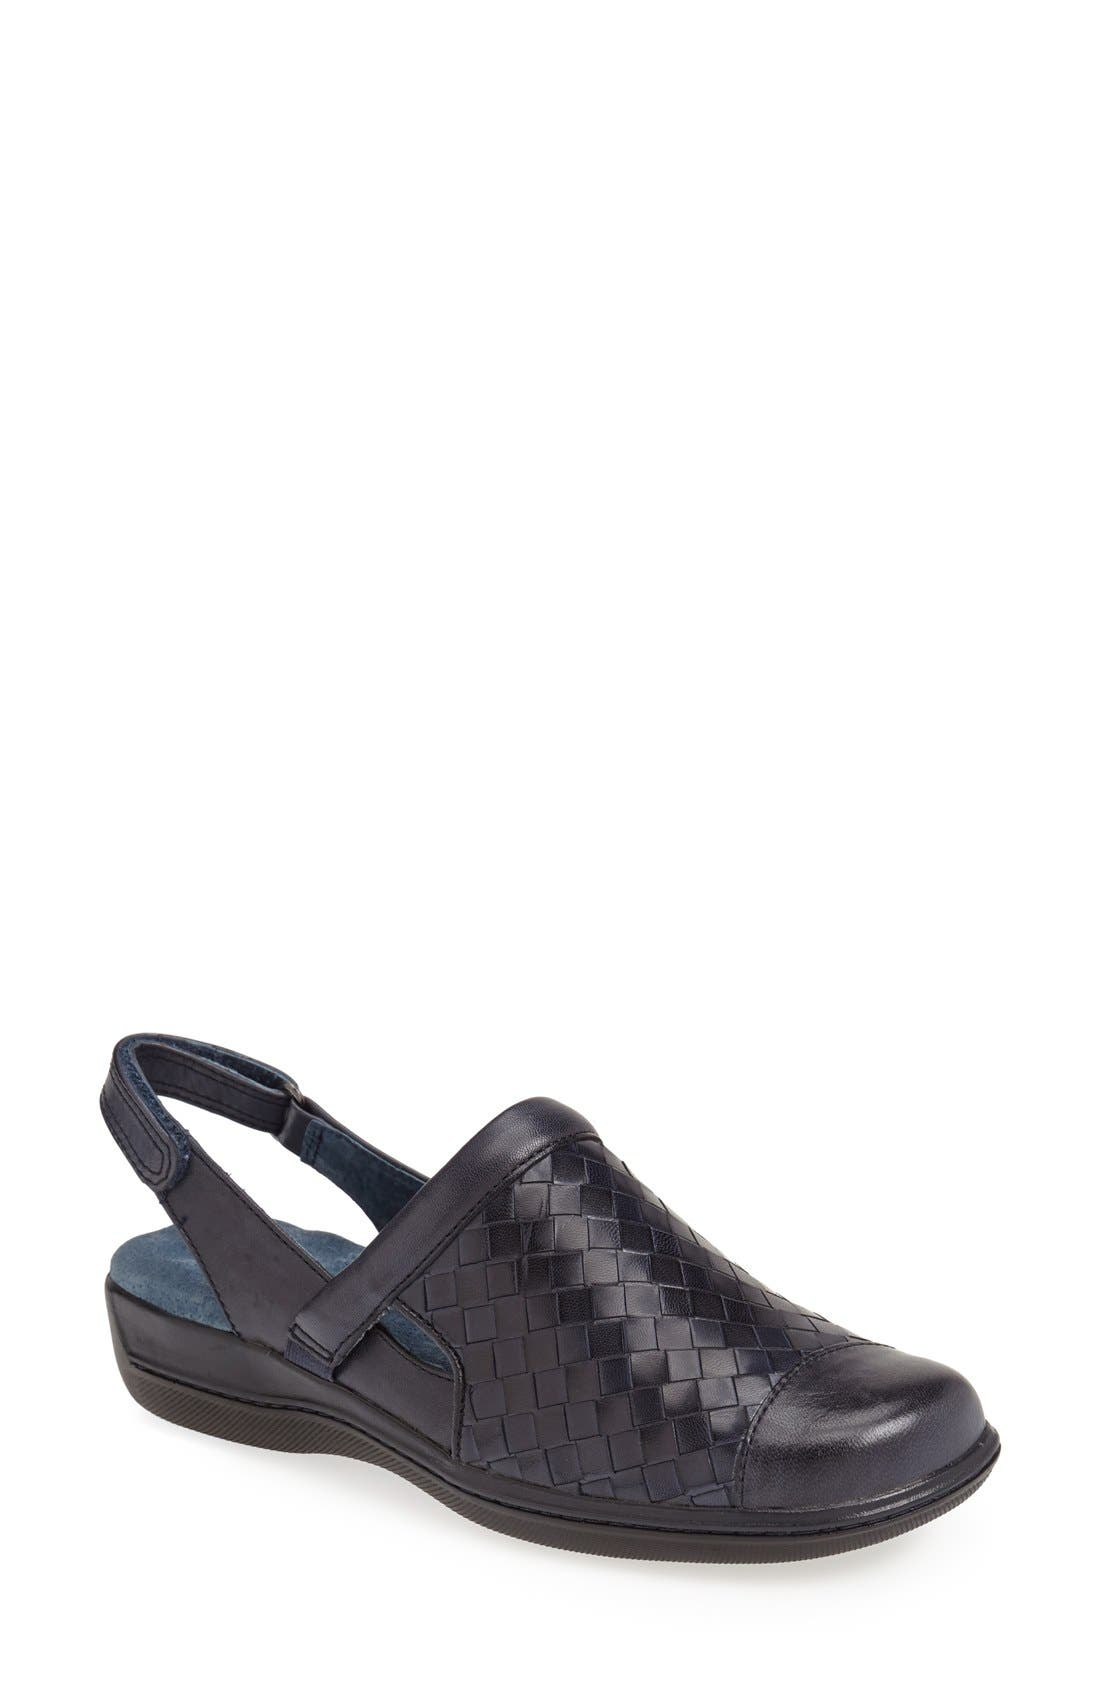 Alternate Image 1 Selected - SoftWalk® 'Salina' Woven Clog (Women)